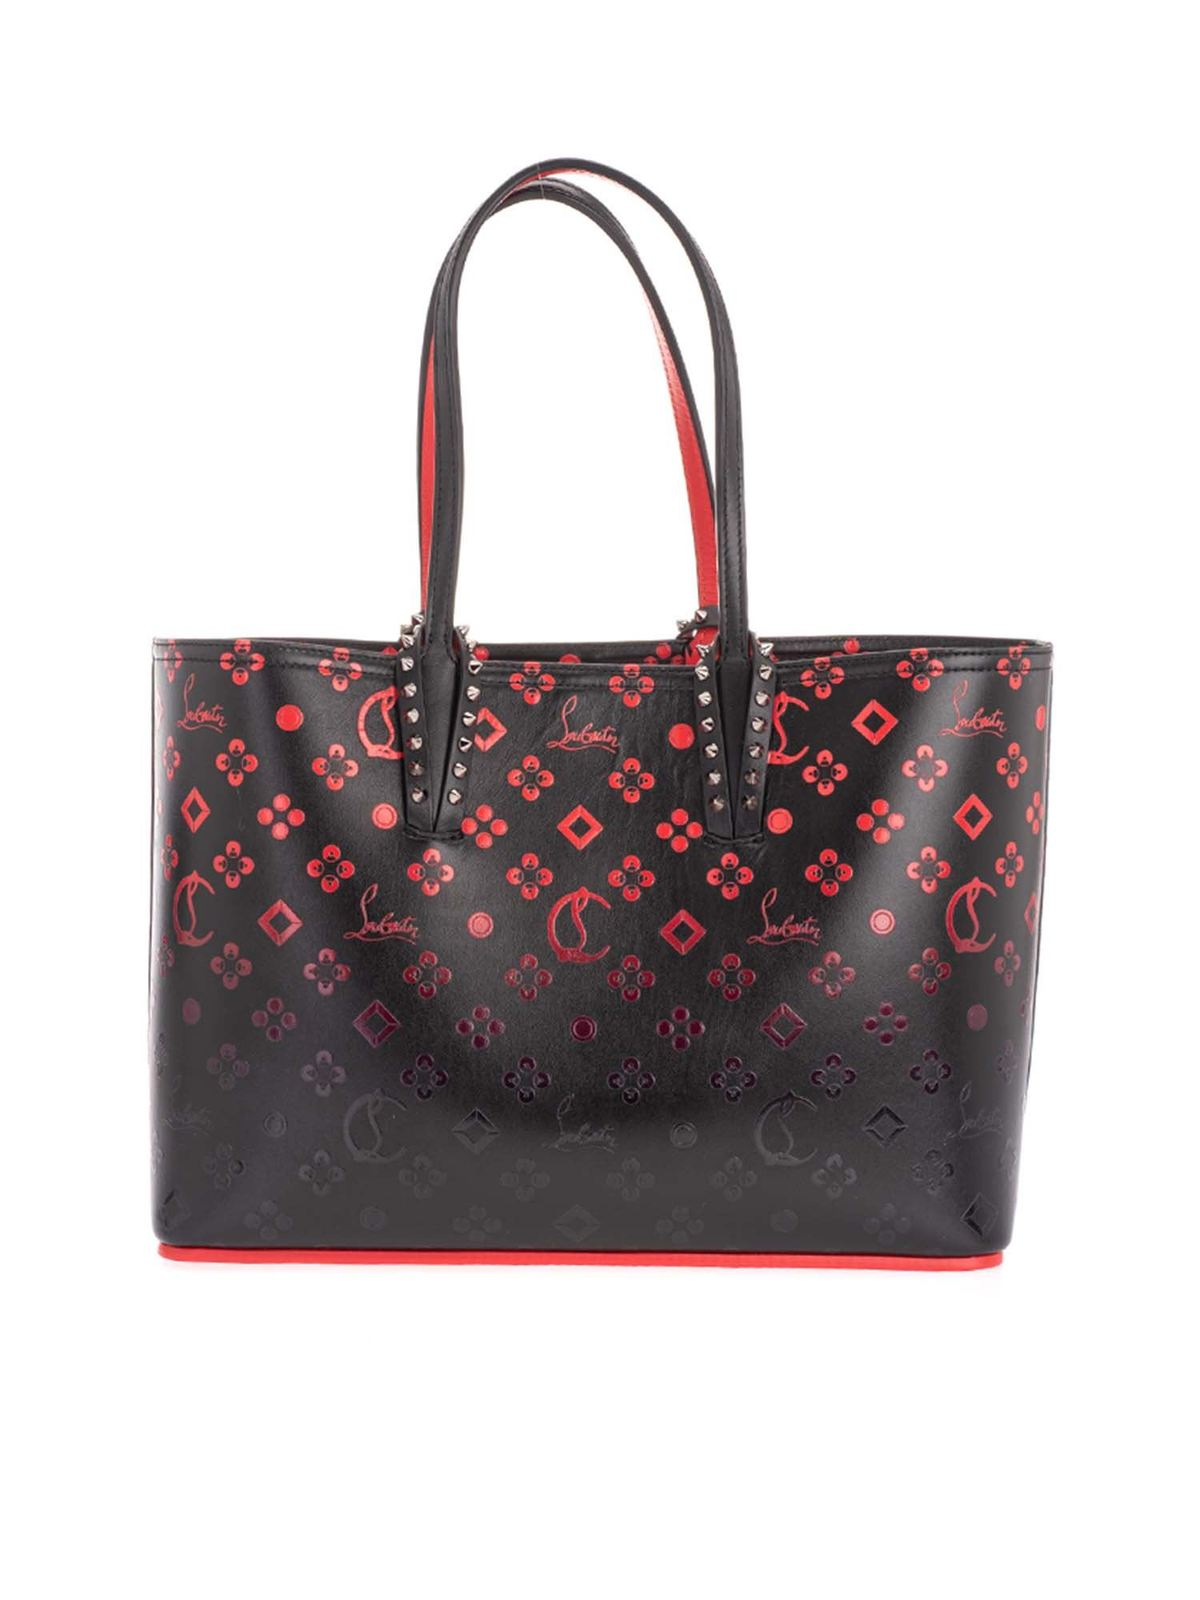 Christian Louboutin CABATA SHOPPER BAG IN BLACK AND RED